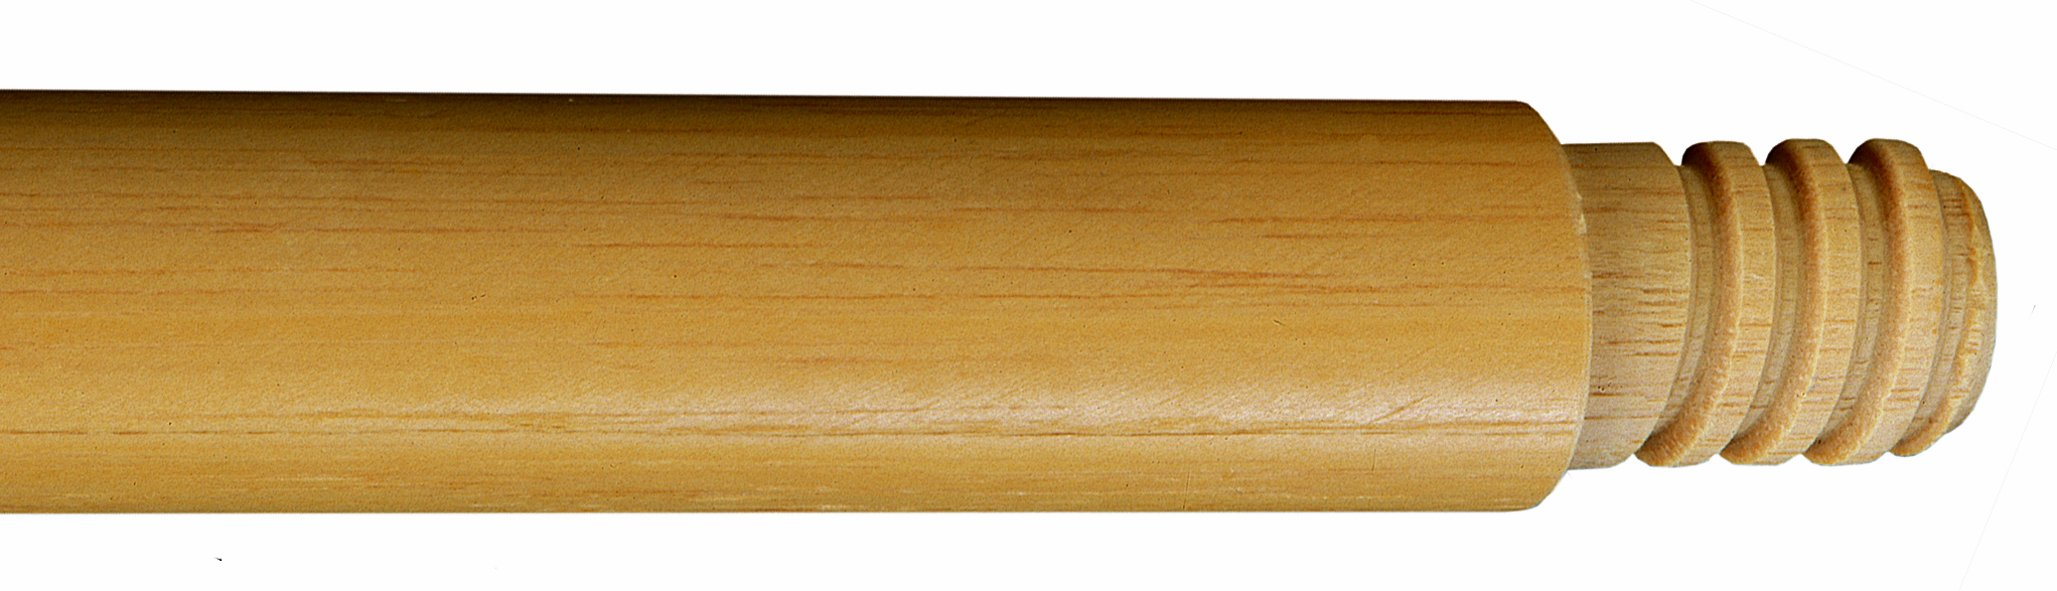 Wilen M101060, Threaded Wood Handle, 60'' Length, 15/16'' Shaft Diameter (Case of 12) by Wilen Professional Cleaning Products